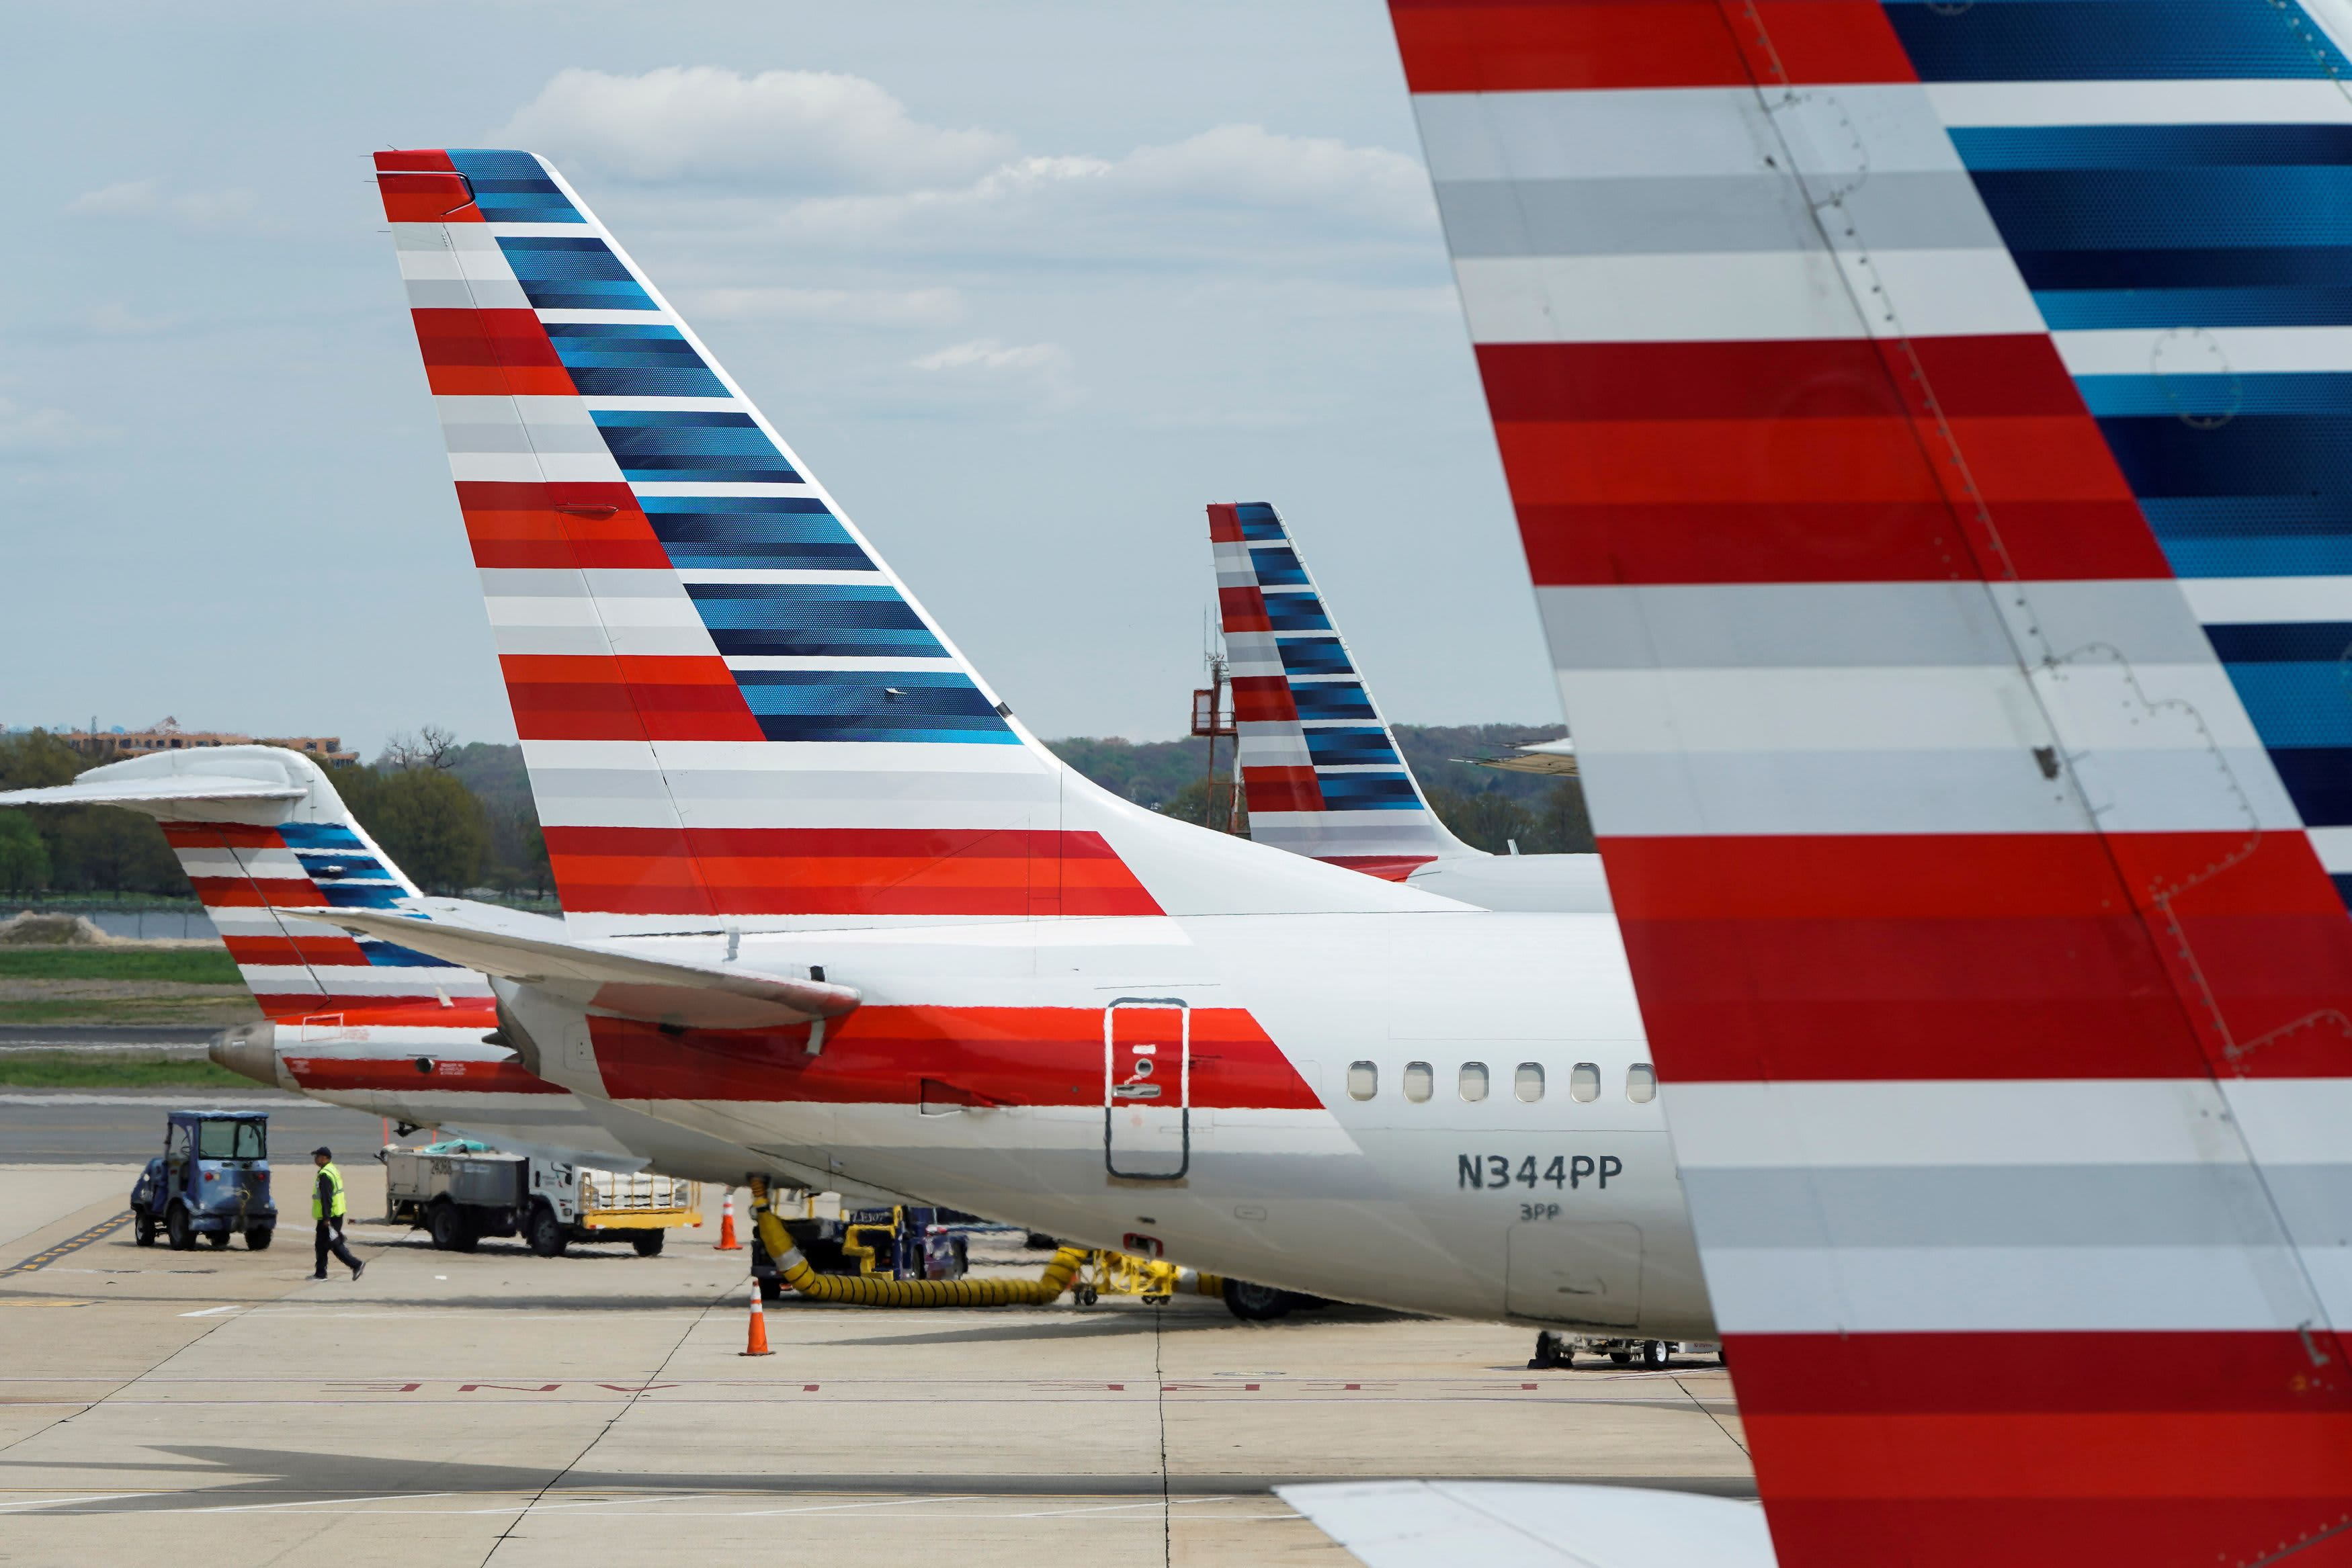 American Airlines will give face masks to passengers, require them for flight attendants amid coronavirus